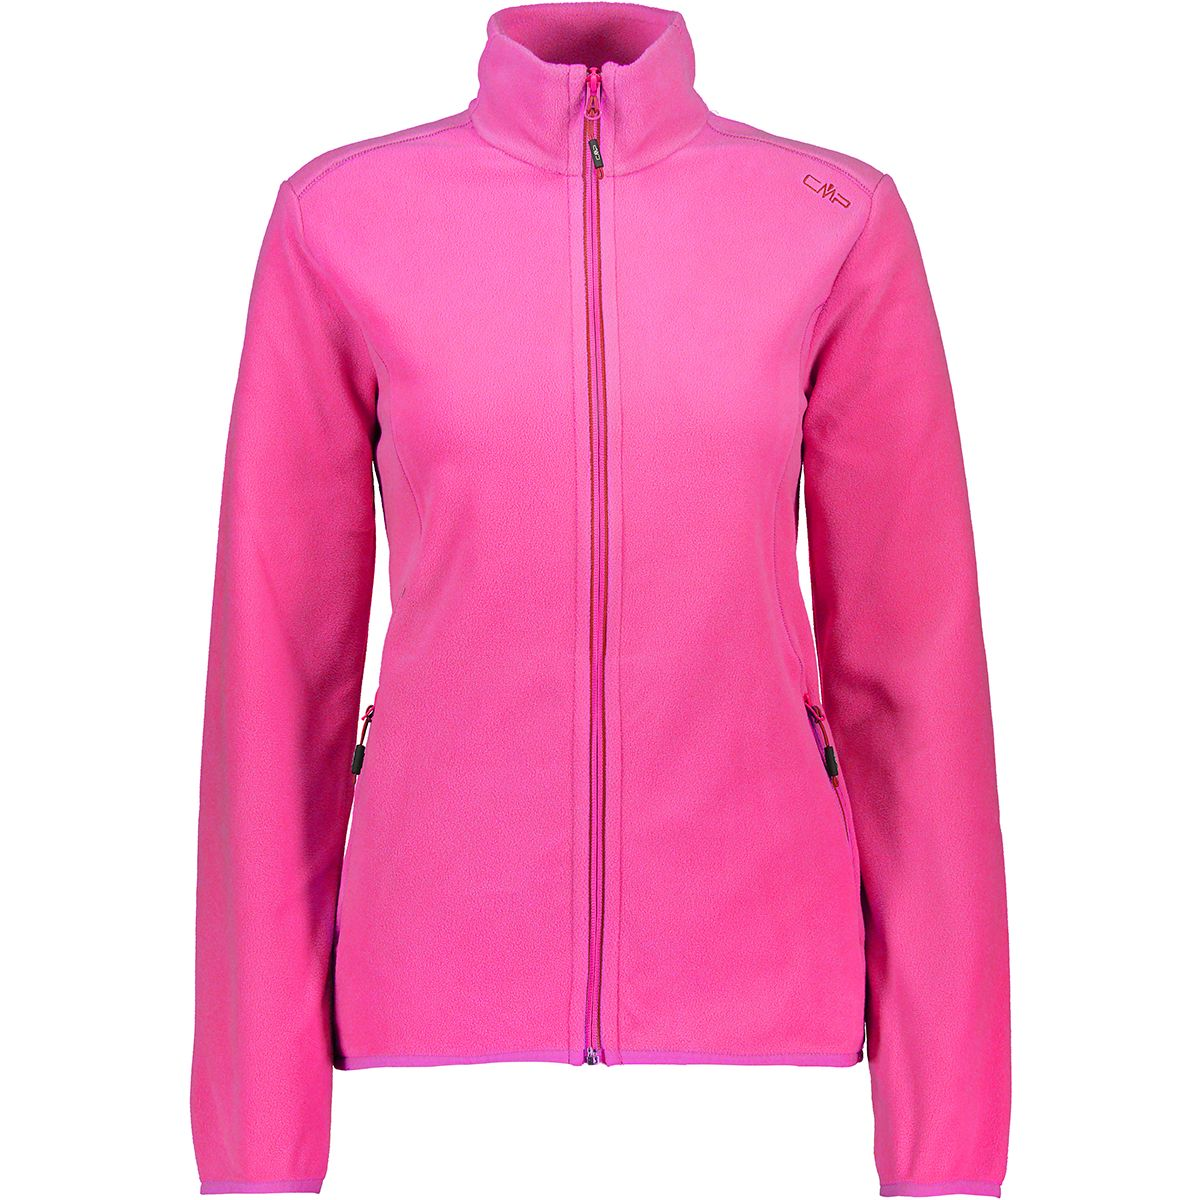 CMP Damen Artic Fleecce Jacke (Größe 3XL, Pink) | Fleecejacken > Damen